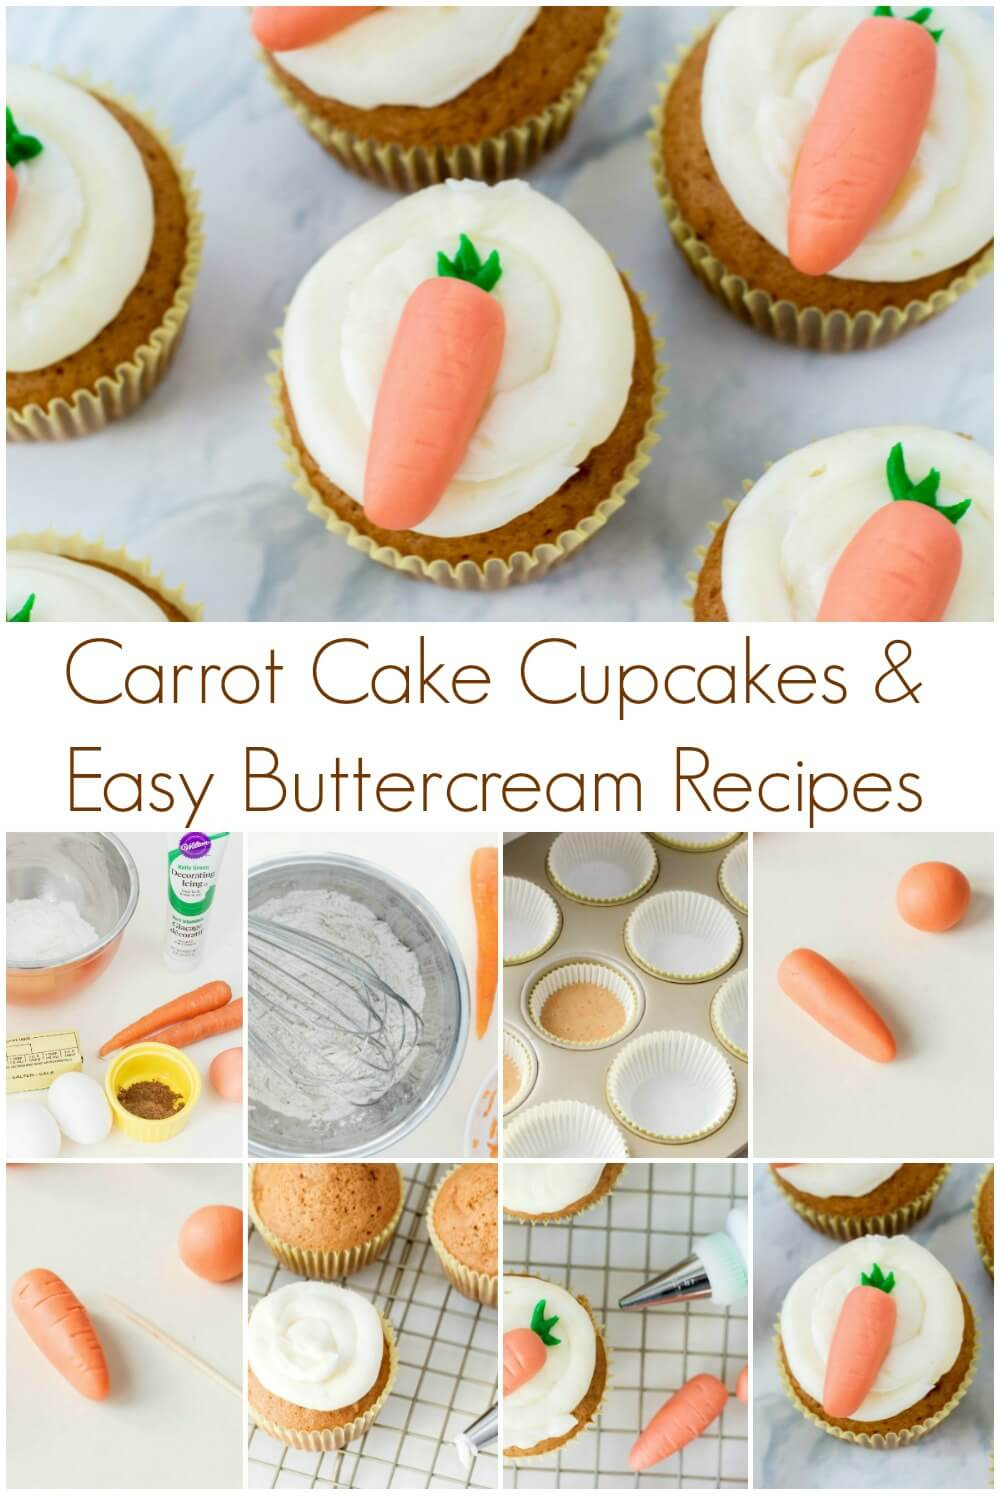 picture collage of completed carrot cupcakes for Easter on top and step by step picture directions on bottom with text carrot cake cupcakes and easy buttercream recipes